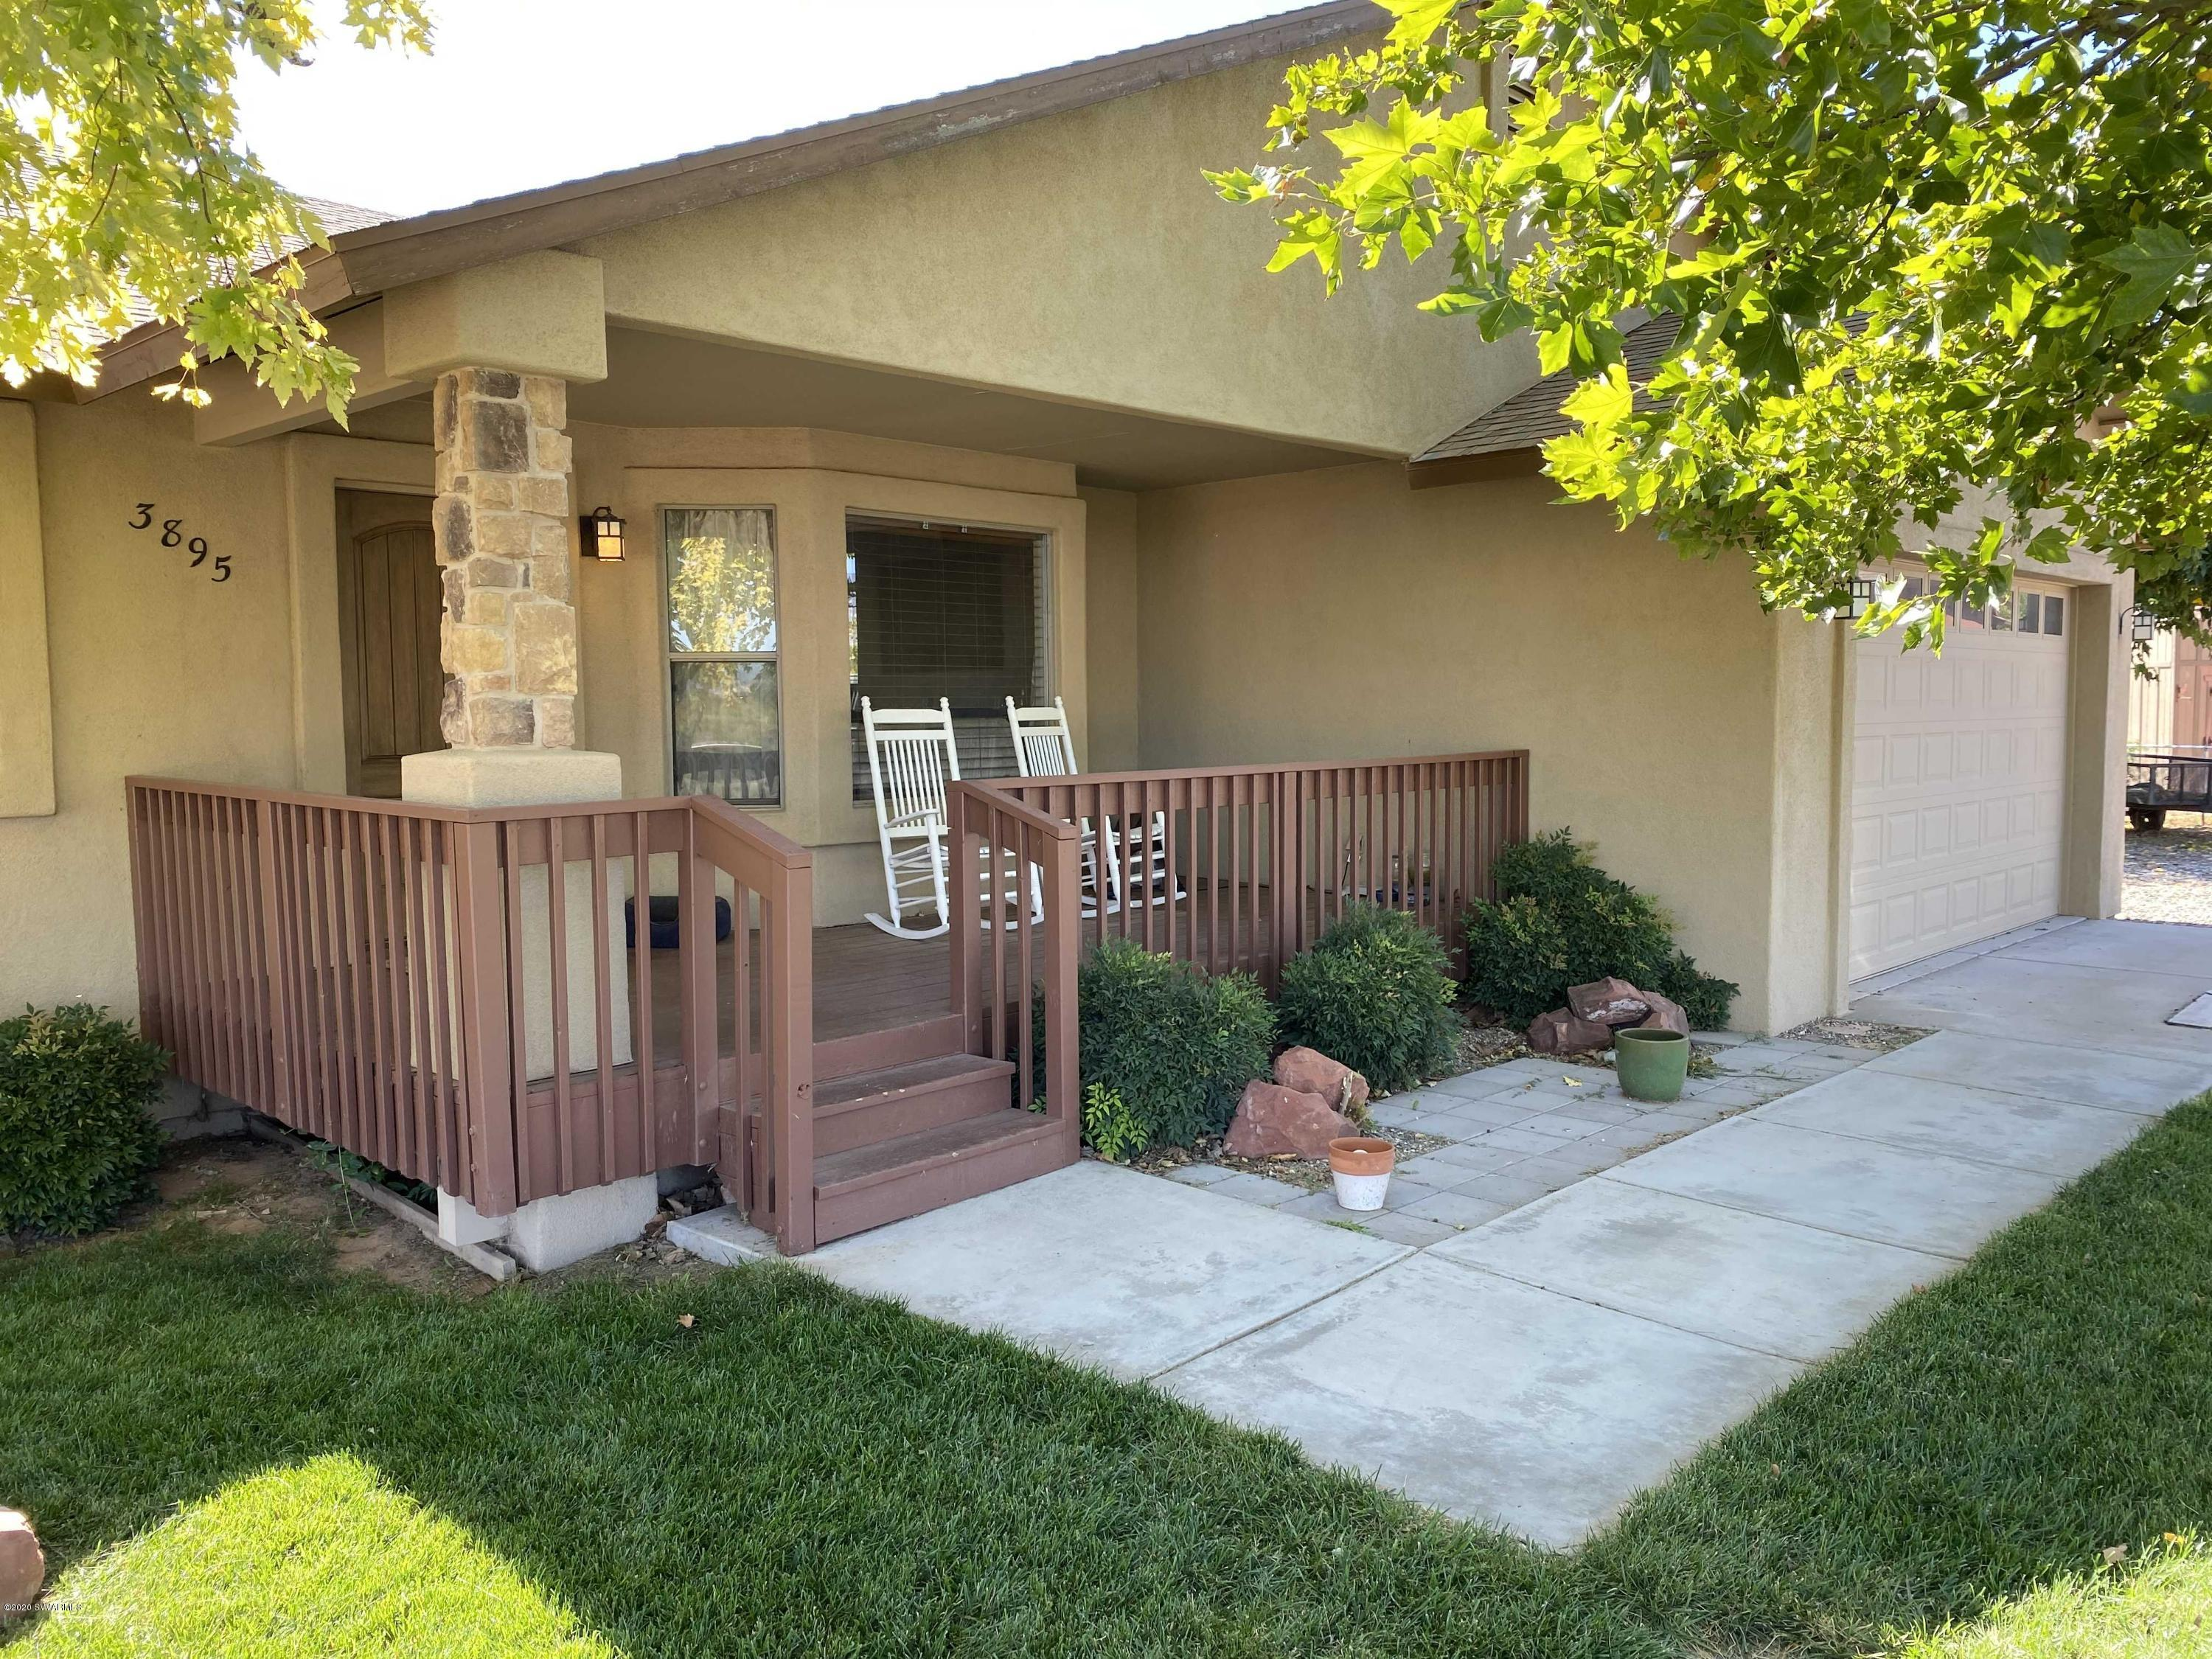 3895 Garden Lane Cottonwood, AZ 86326